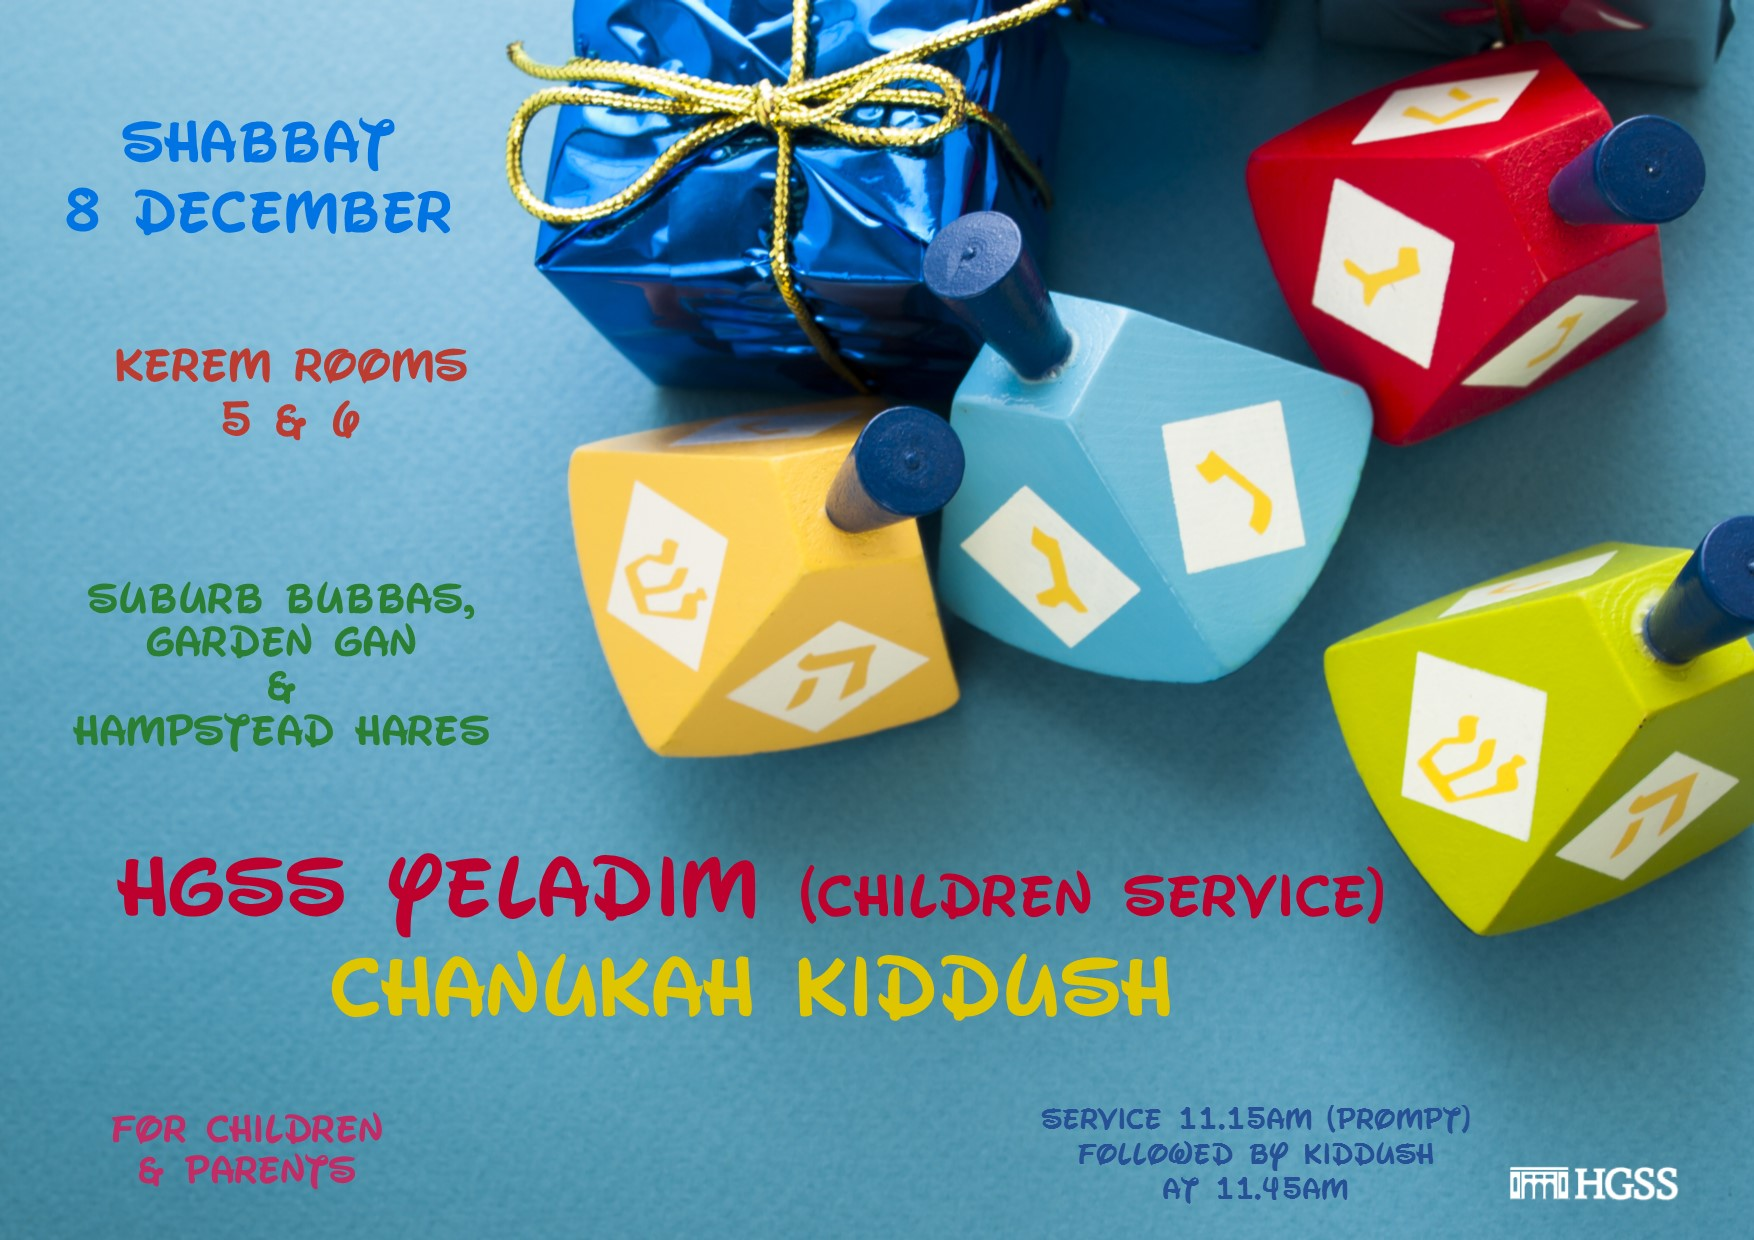 HGSS Yeladim (children service)  Chanukah Kiddush